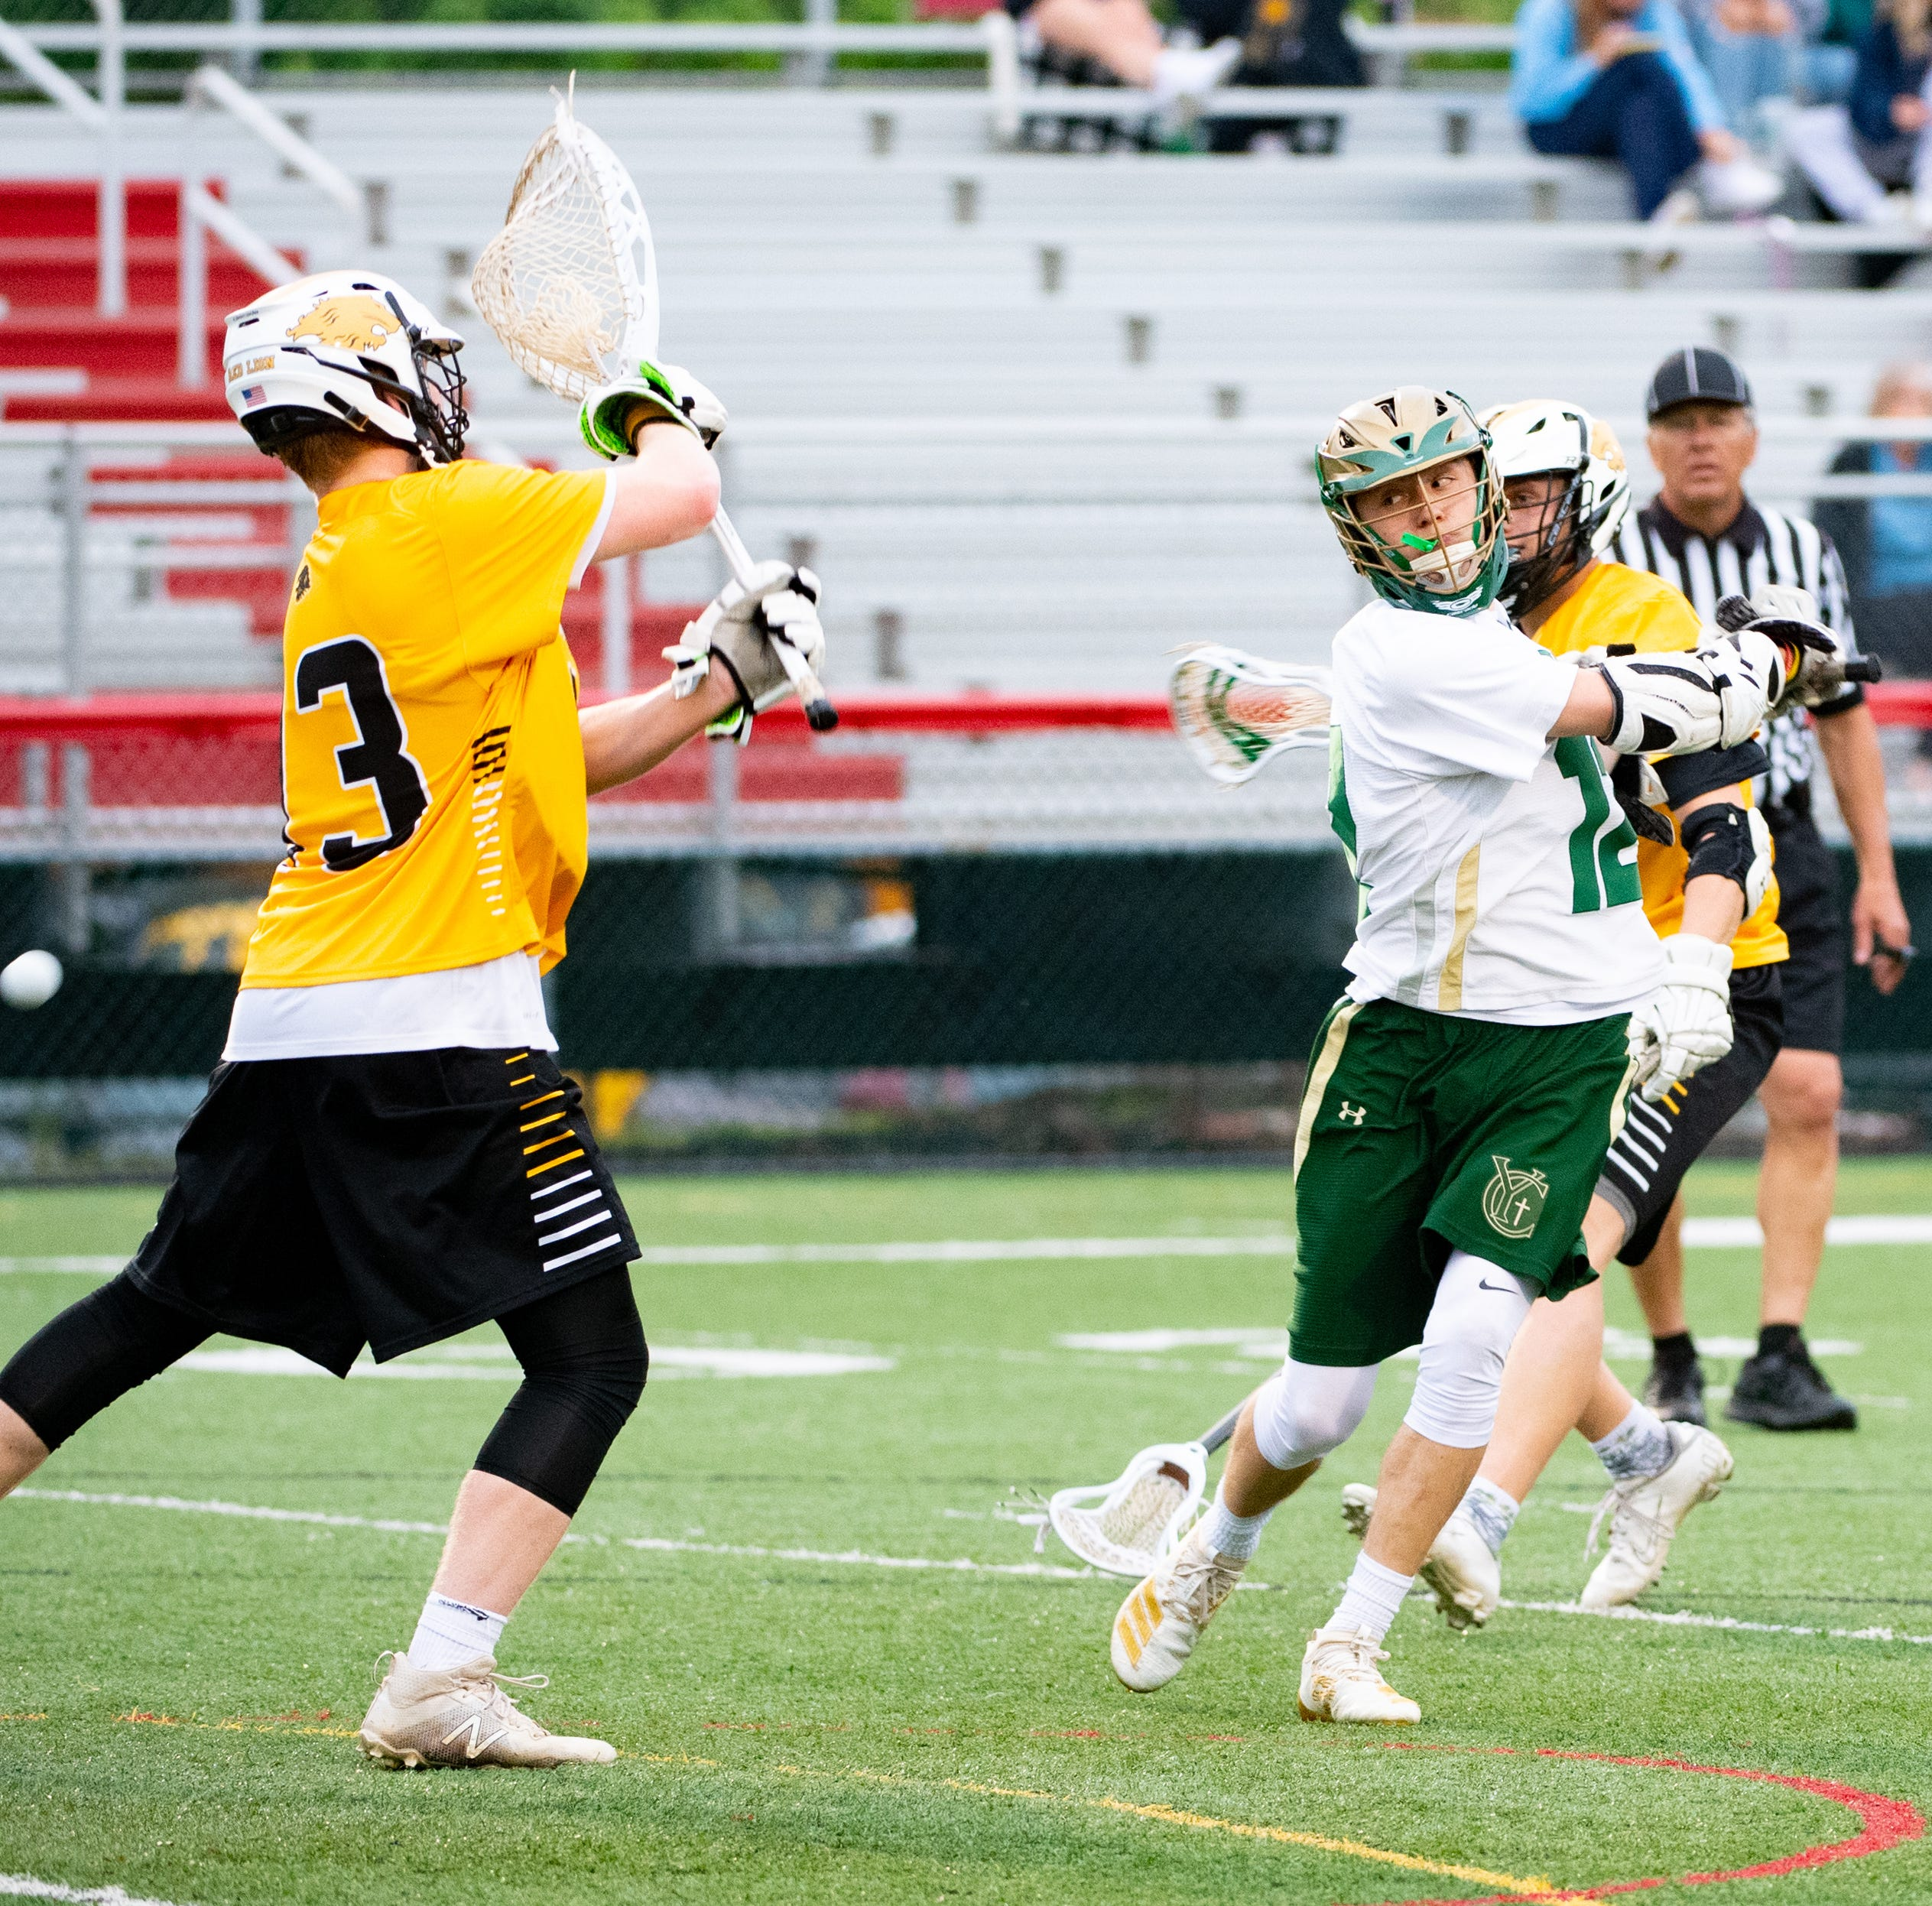 YAIAA boys' lacrosse coaches name league's top players